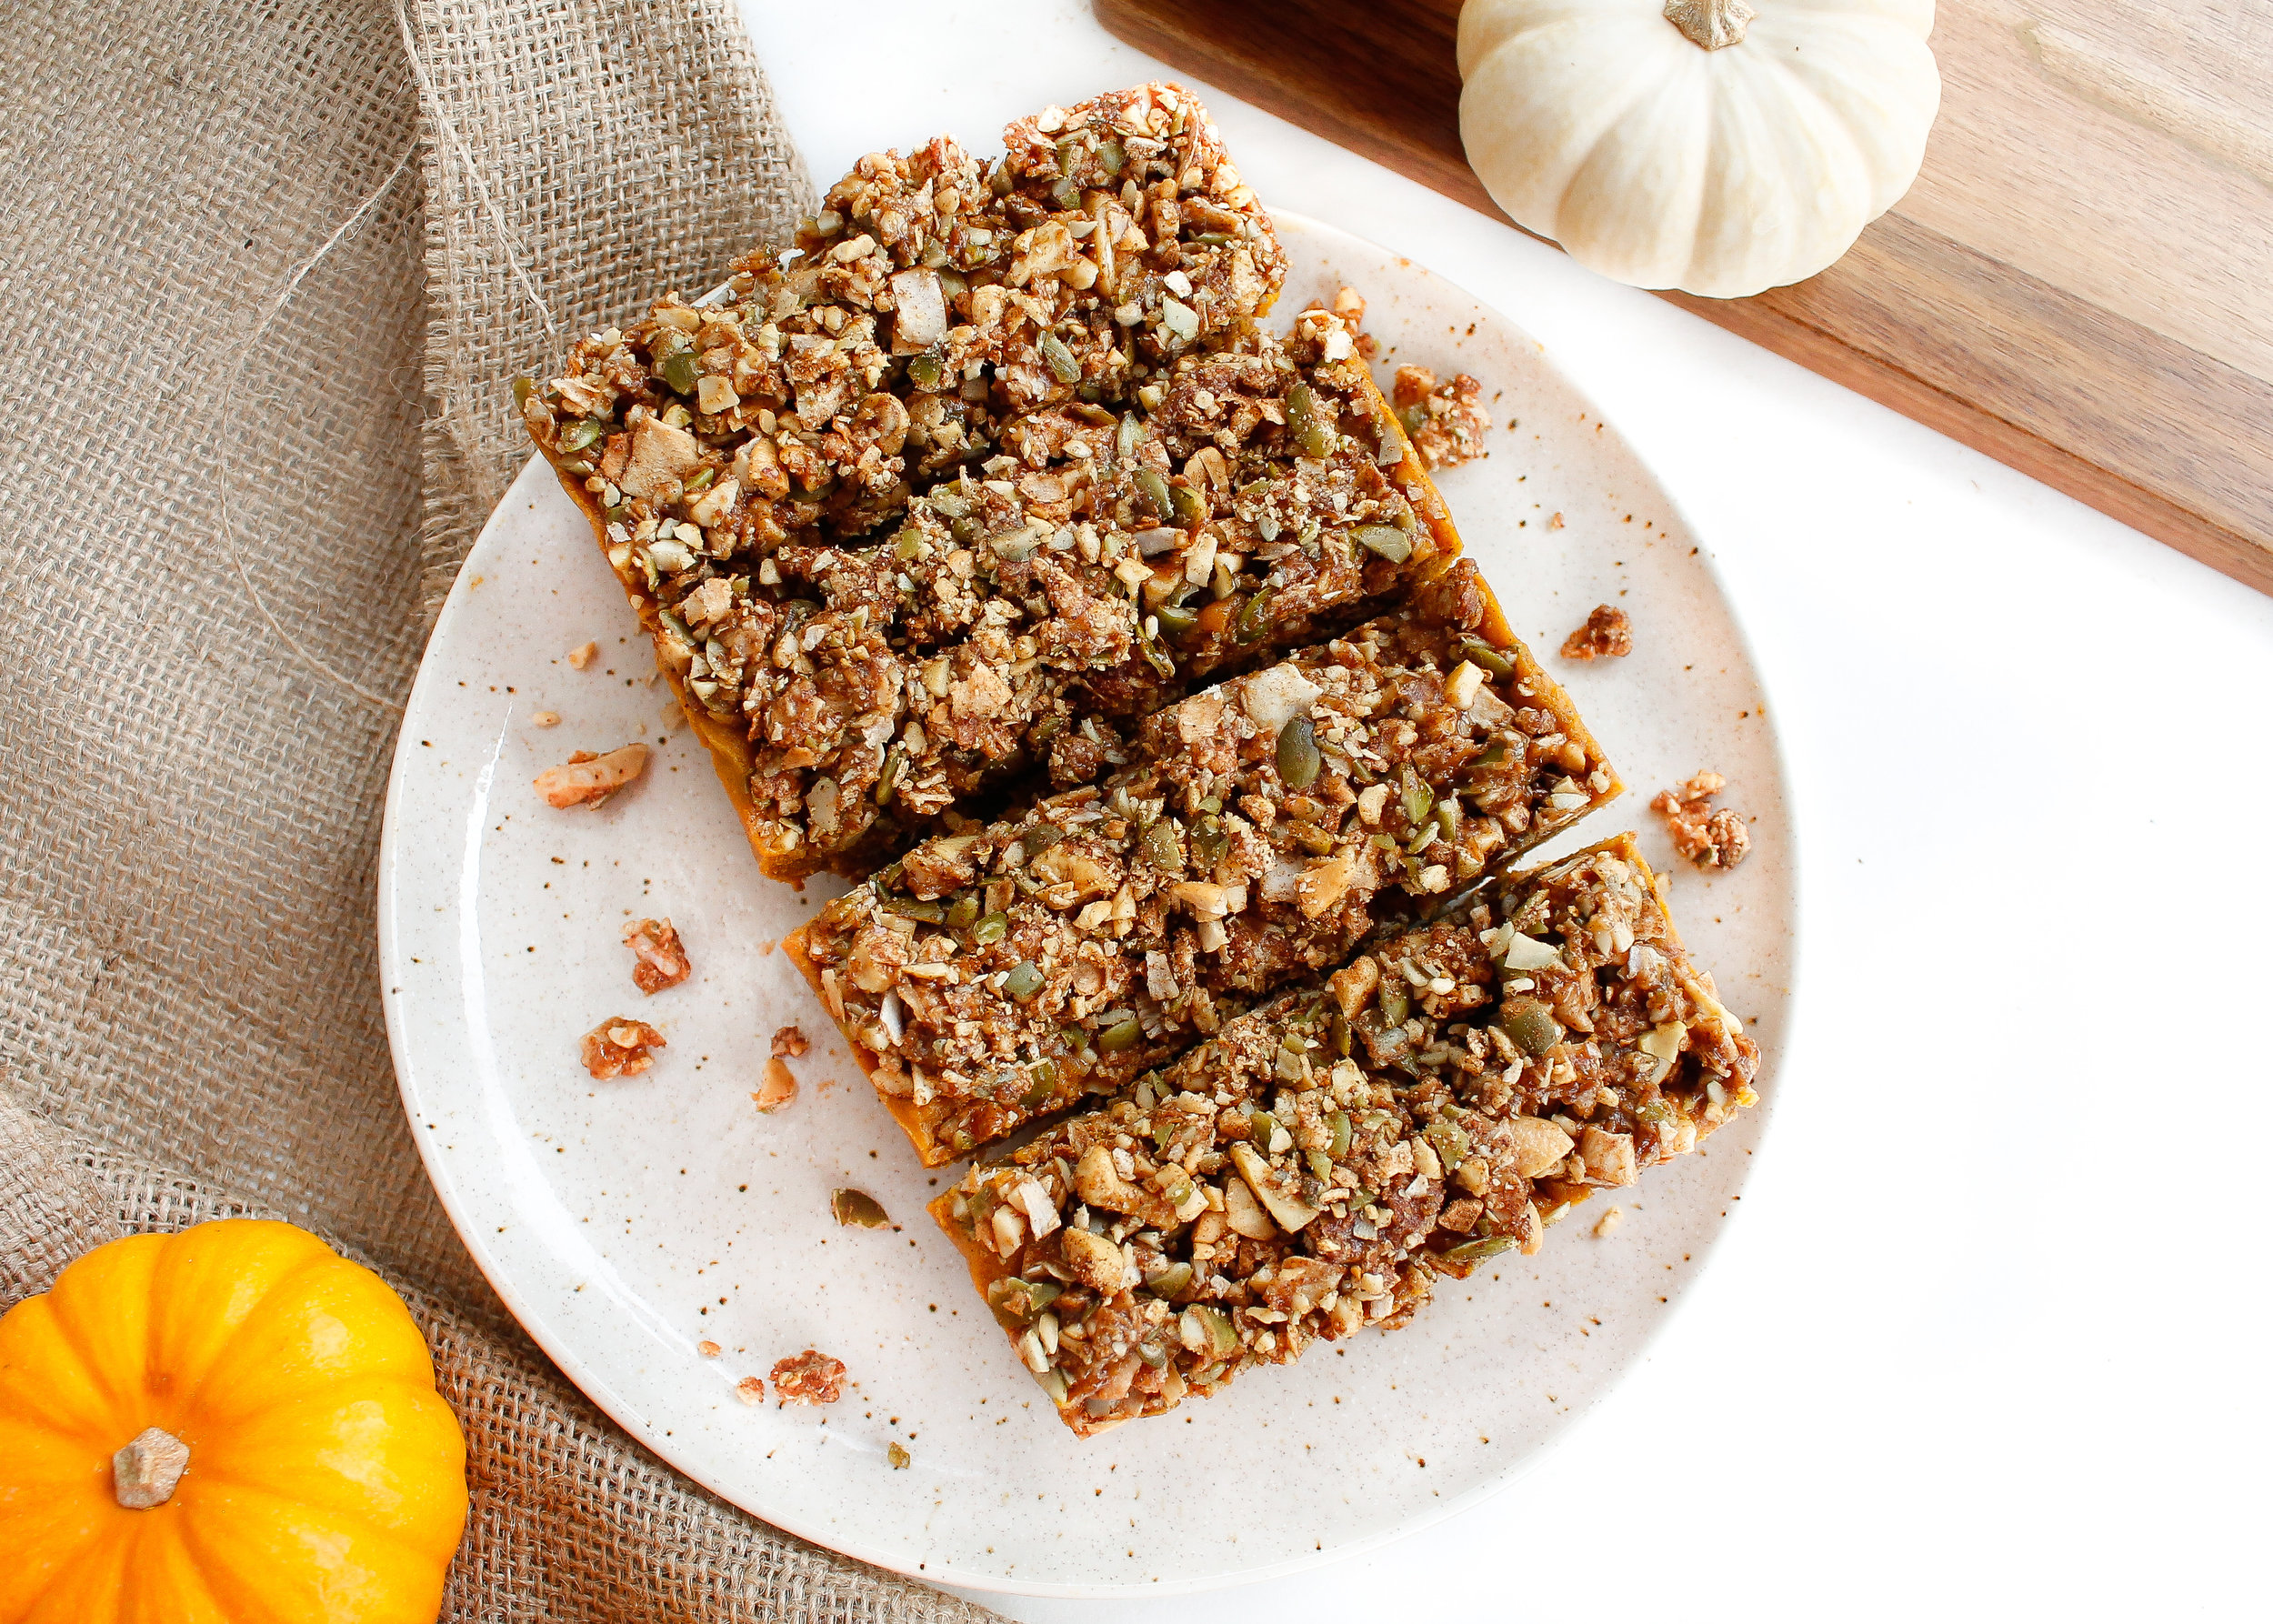 These paleo no-bake pumpkin pie bars are the dreamiest addition to your holidays! They're grain free, gluten free, vegan and refined sugar free. They're also Specific Carbohydrate Diet friendly, making them a perfect low inflammation dessert! A great healthy desert alternative! Click through the try the recipe for yourself! #paleo #paleodessert #specificcarbohydratediet